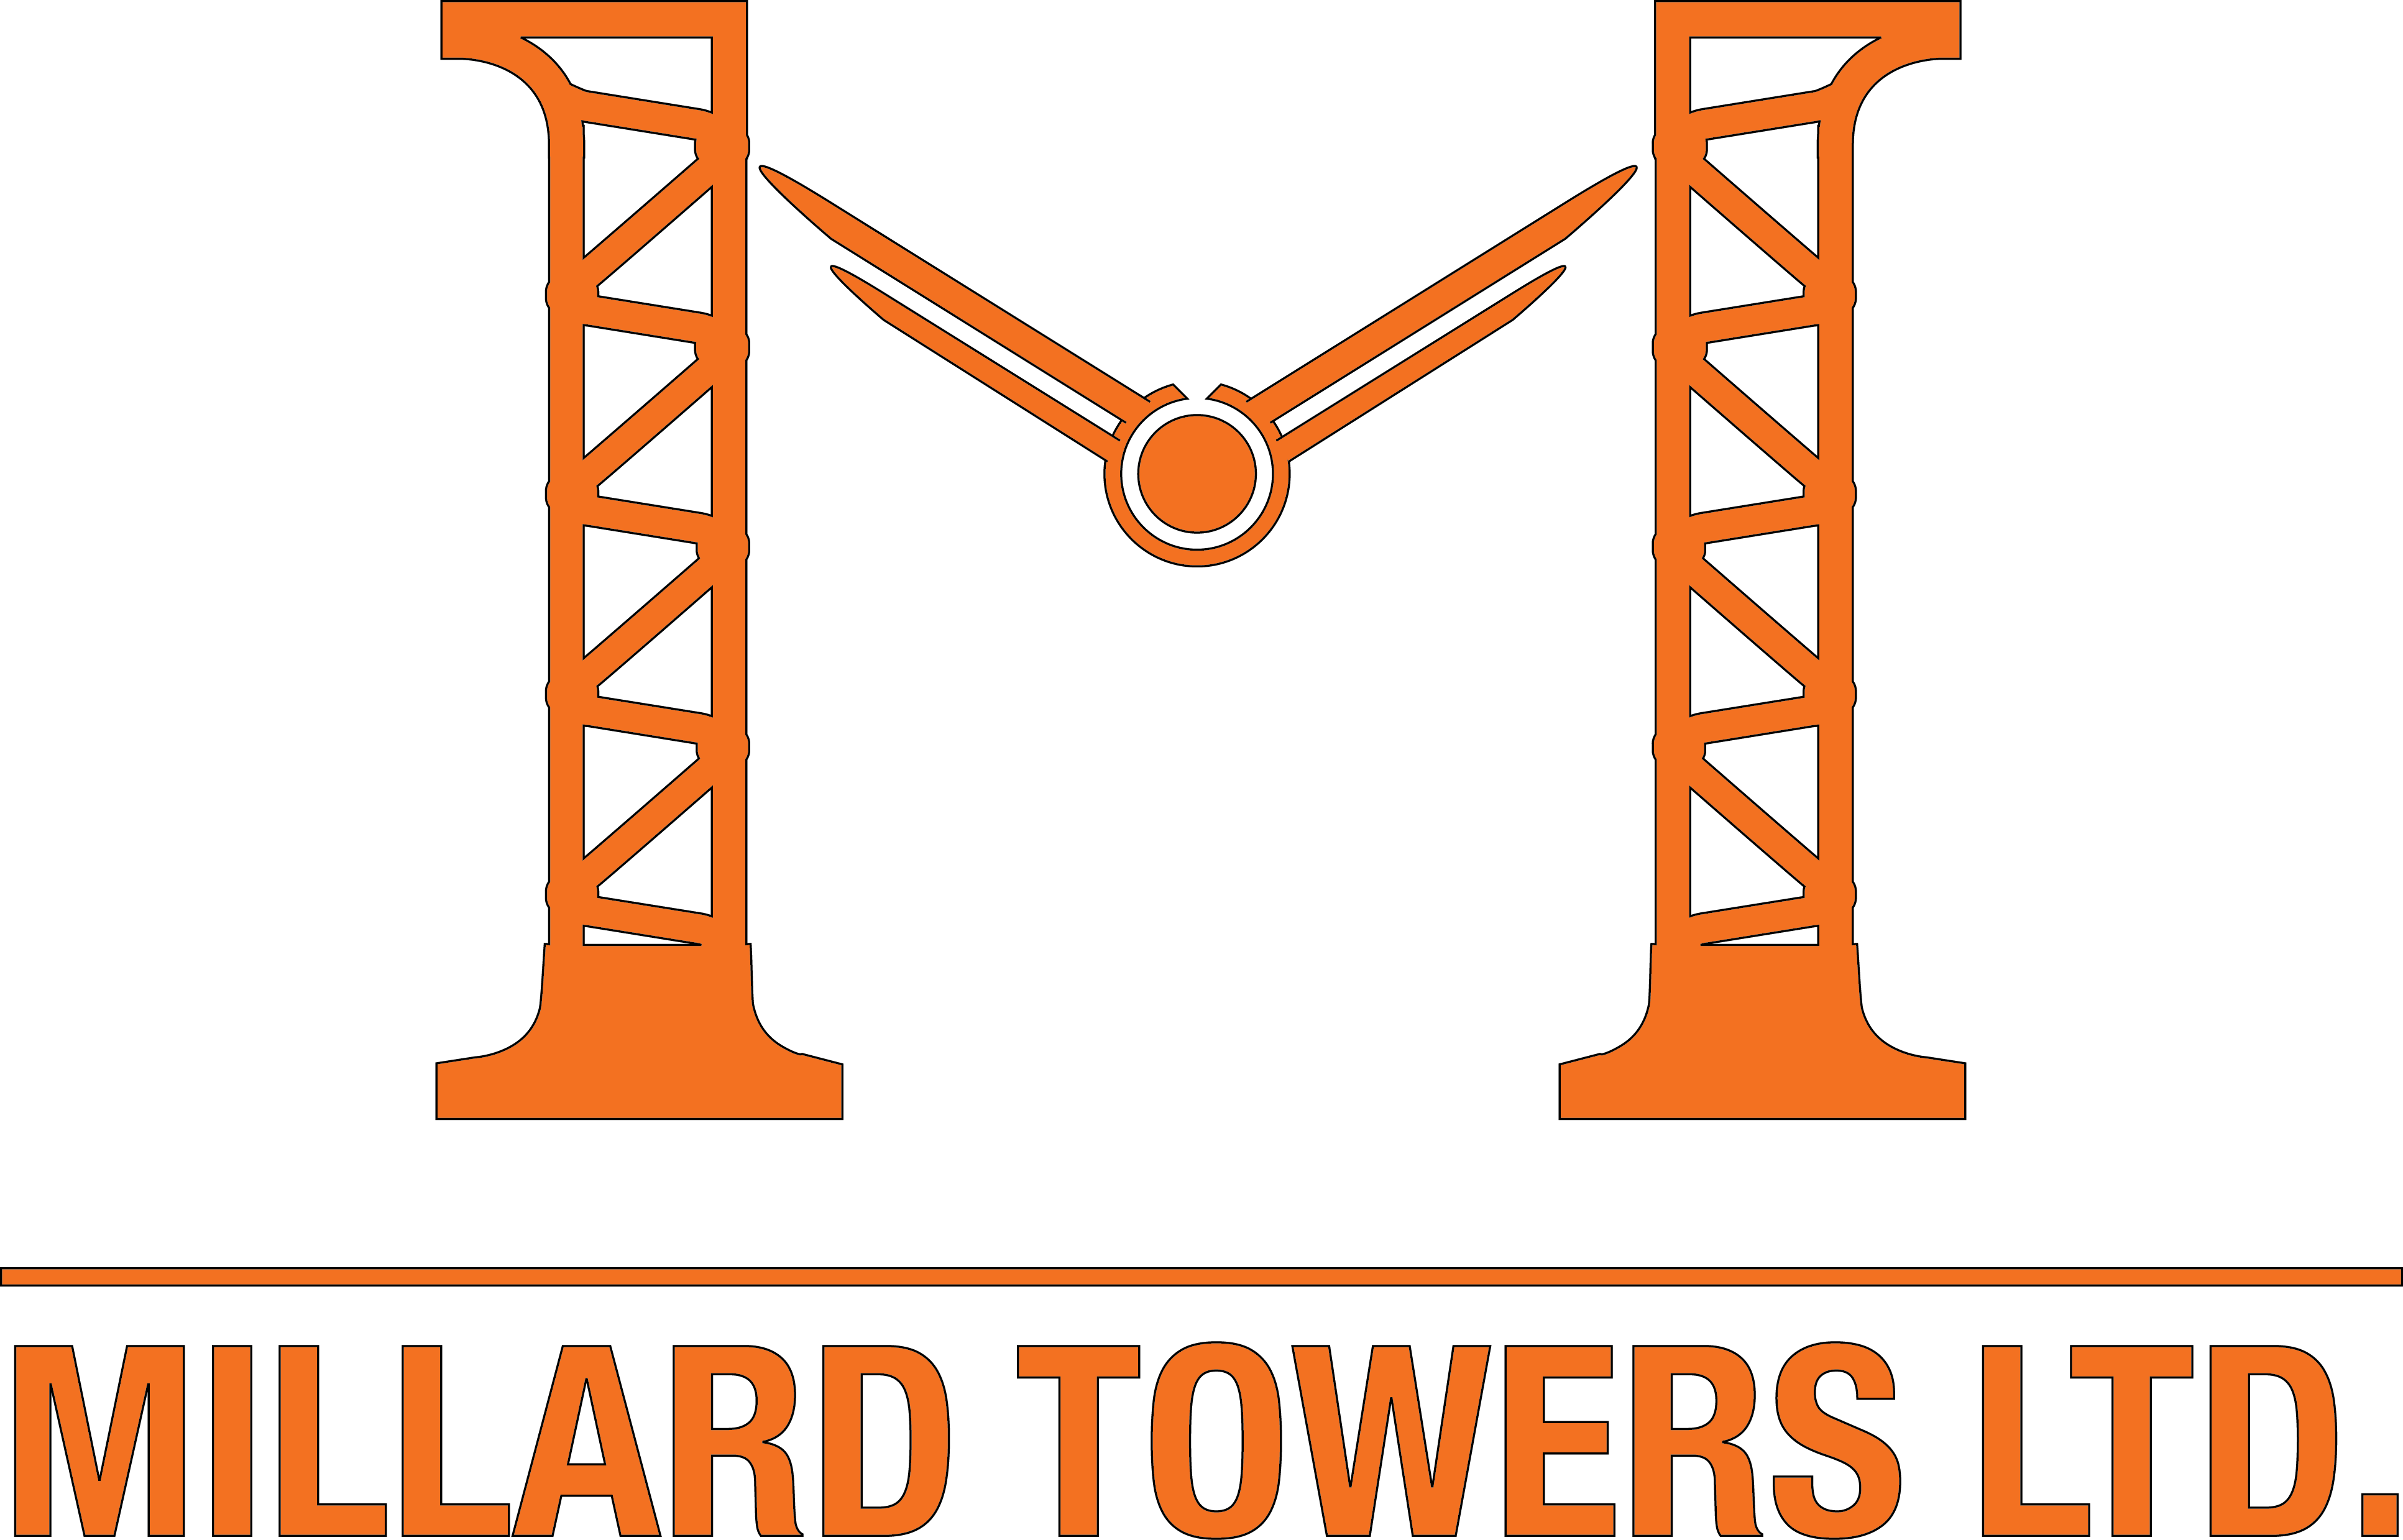 Millard Towers Ltd.